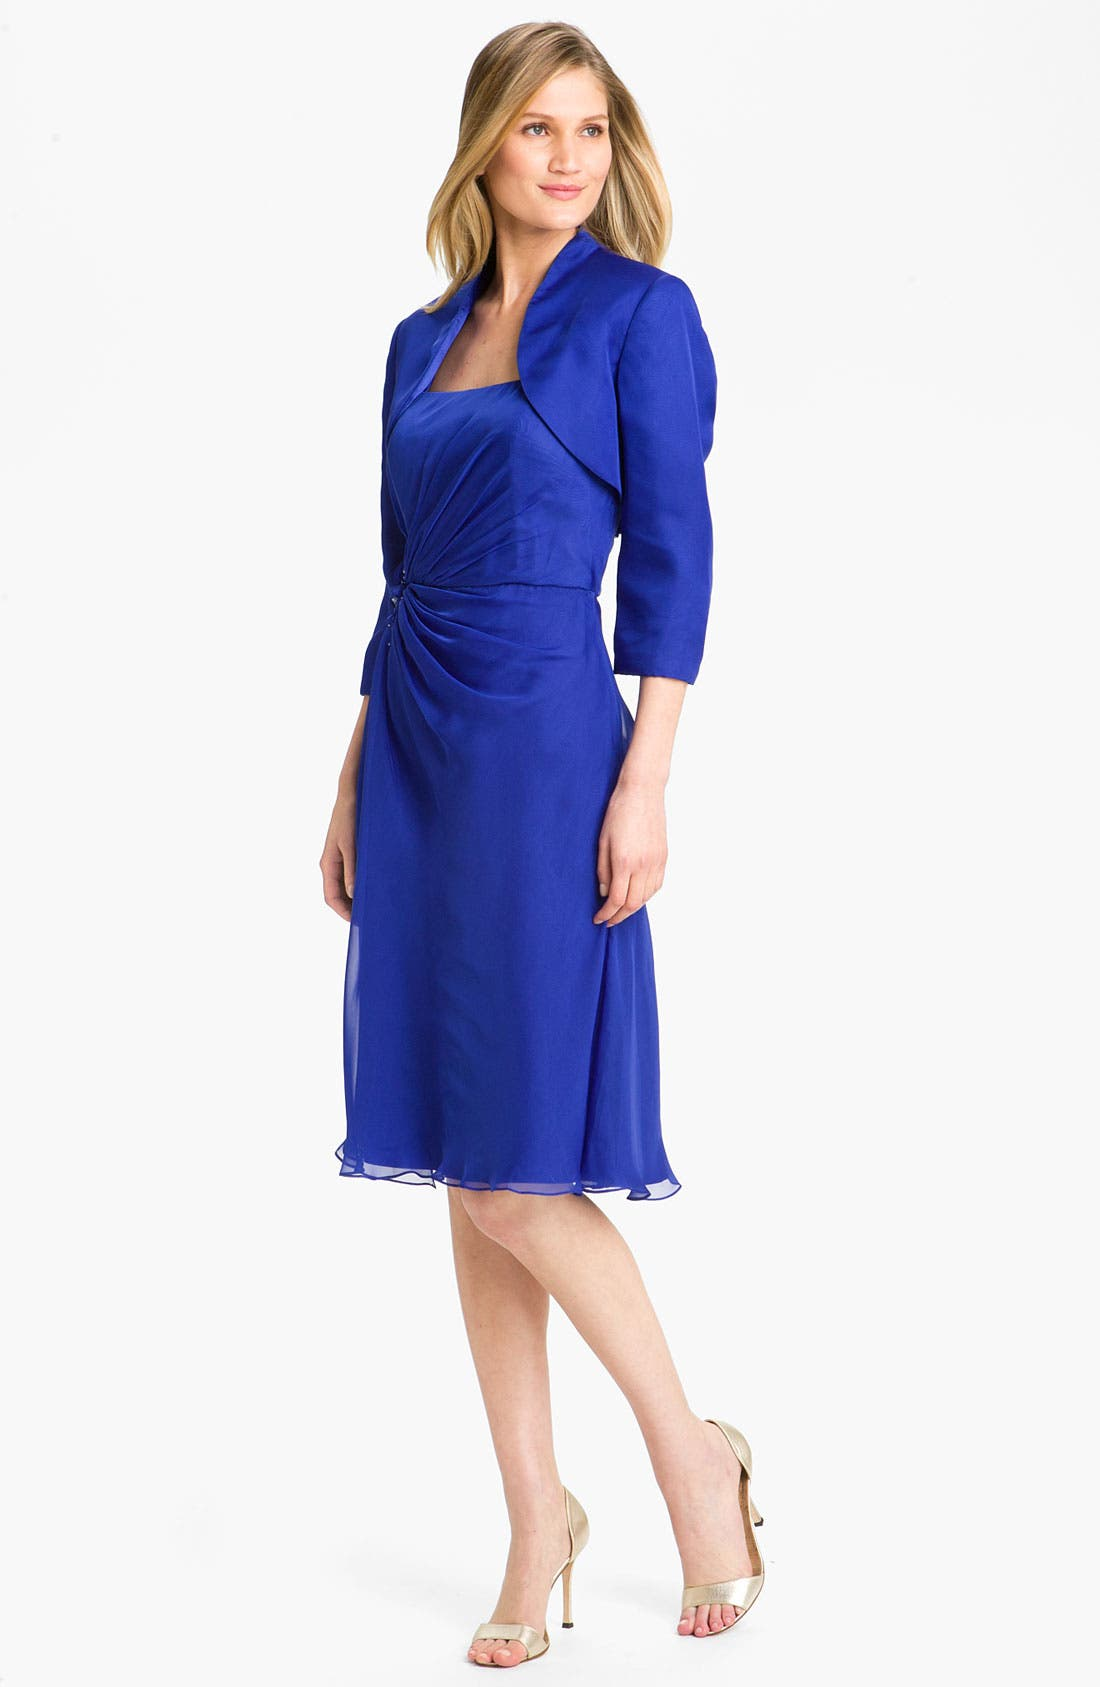 Main Image - Veni Infantino Ruched Chiffon Dress & Bolero